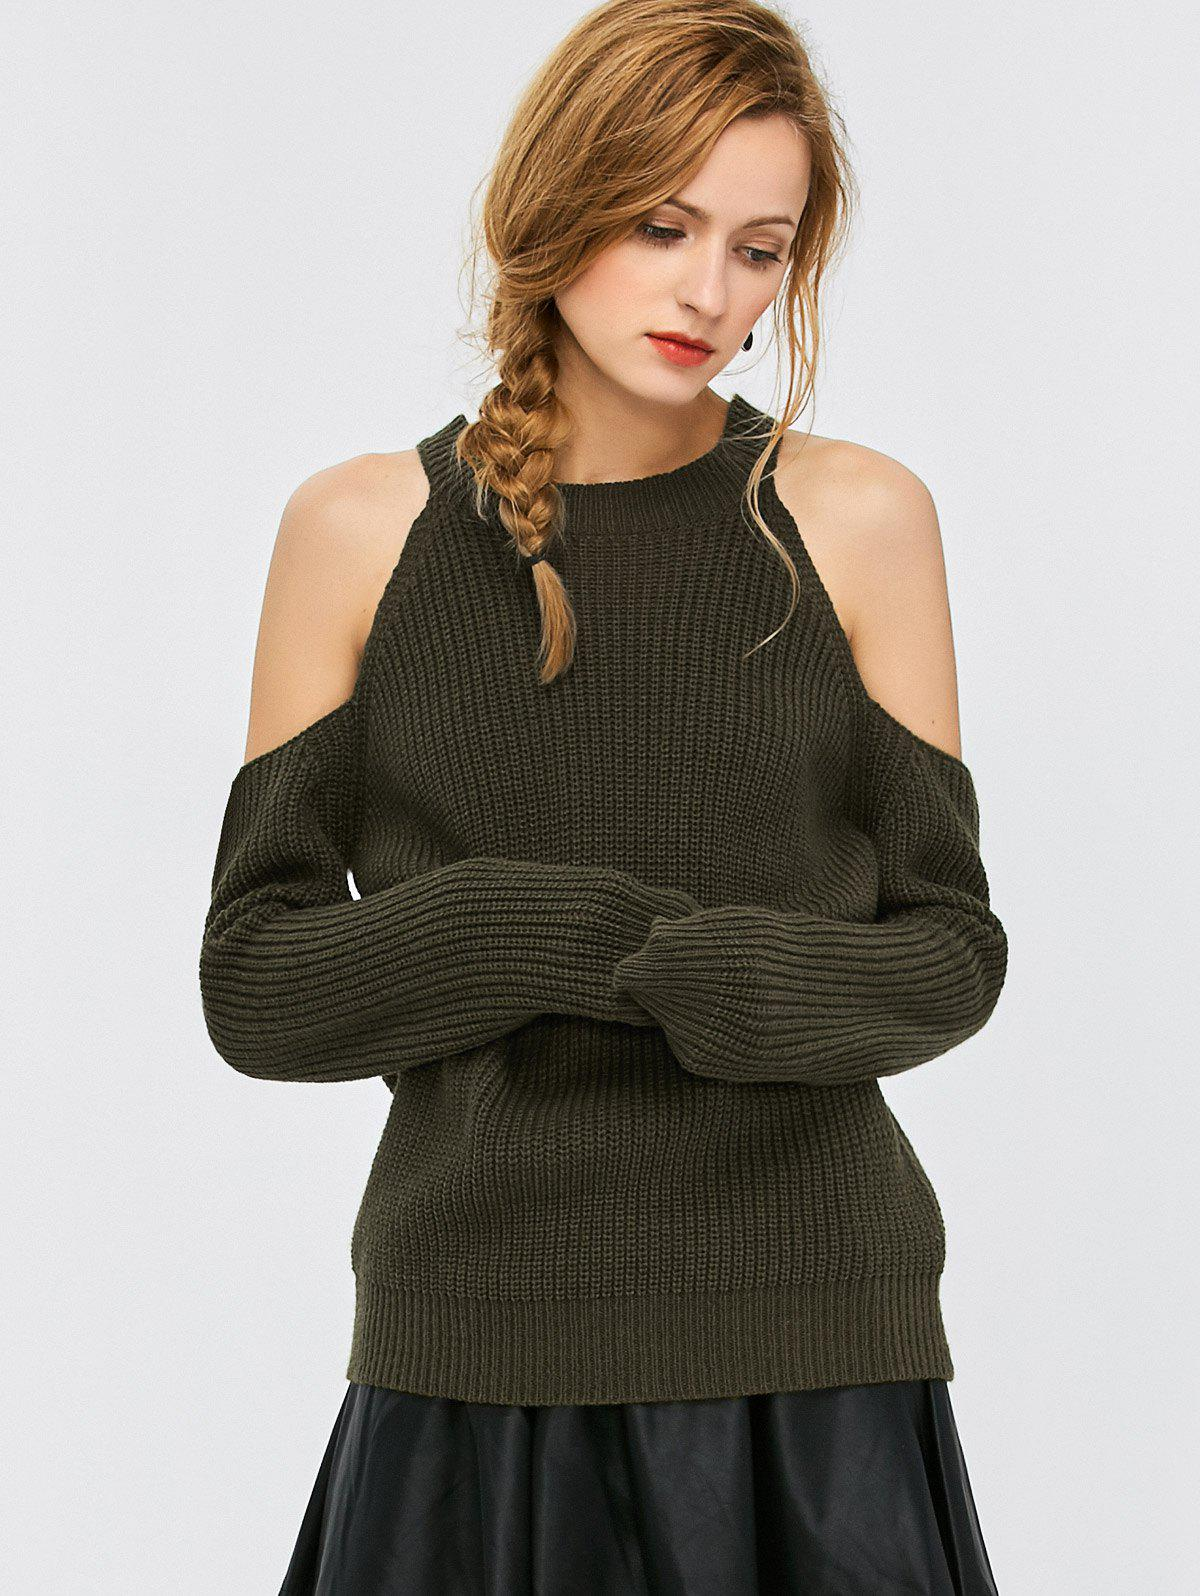 Cold Shoulder Crew Neck Ribbed Sweater candino c4518 3